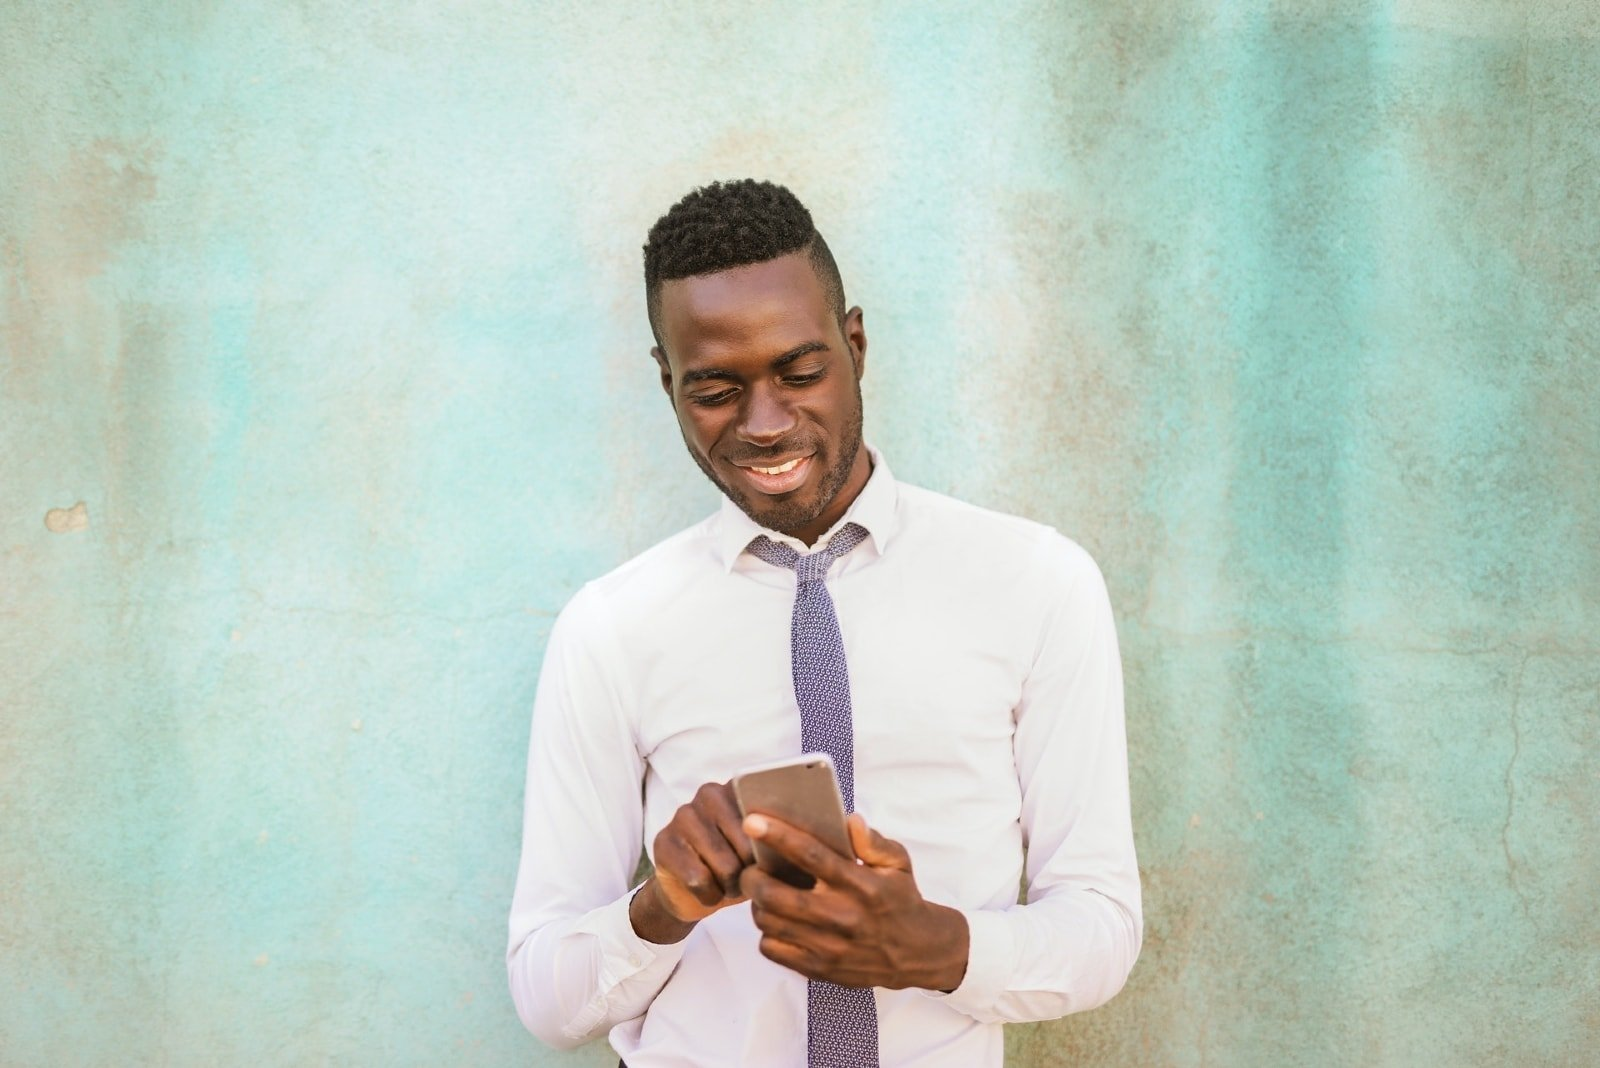 happy man in white shirt holding smartphone near wall